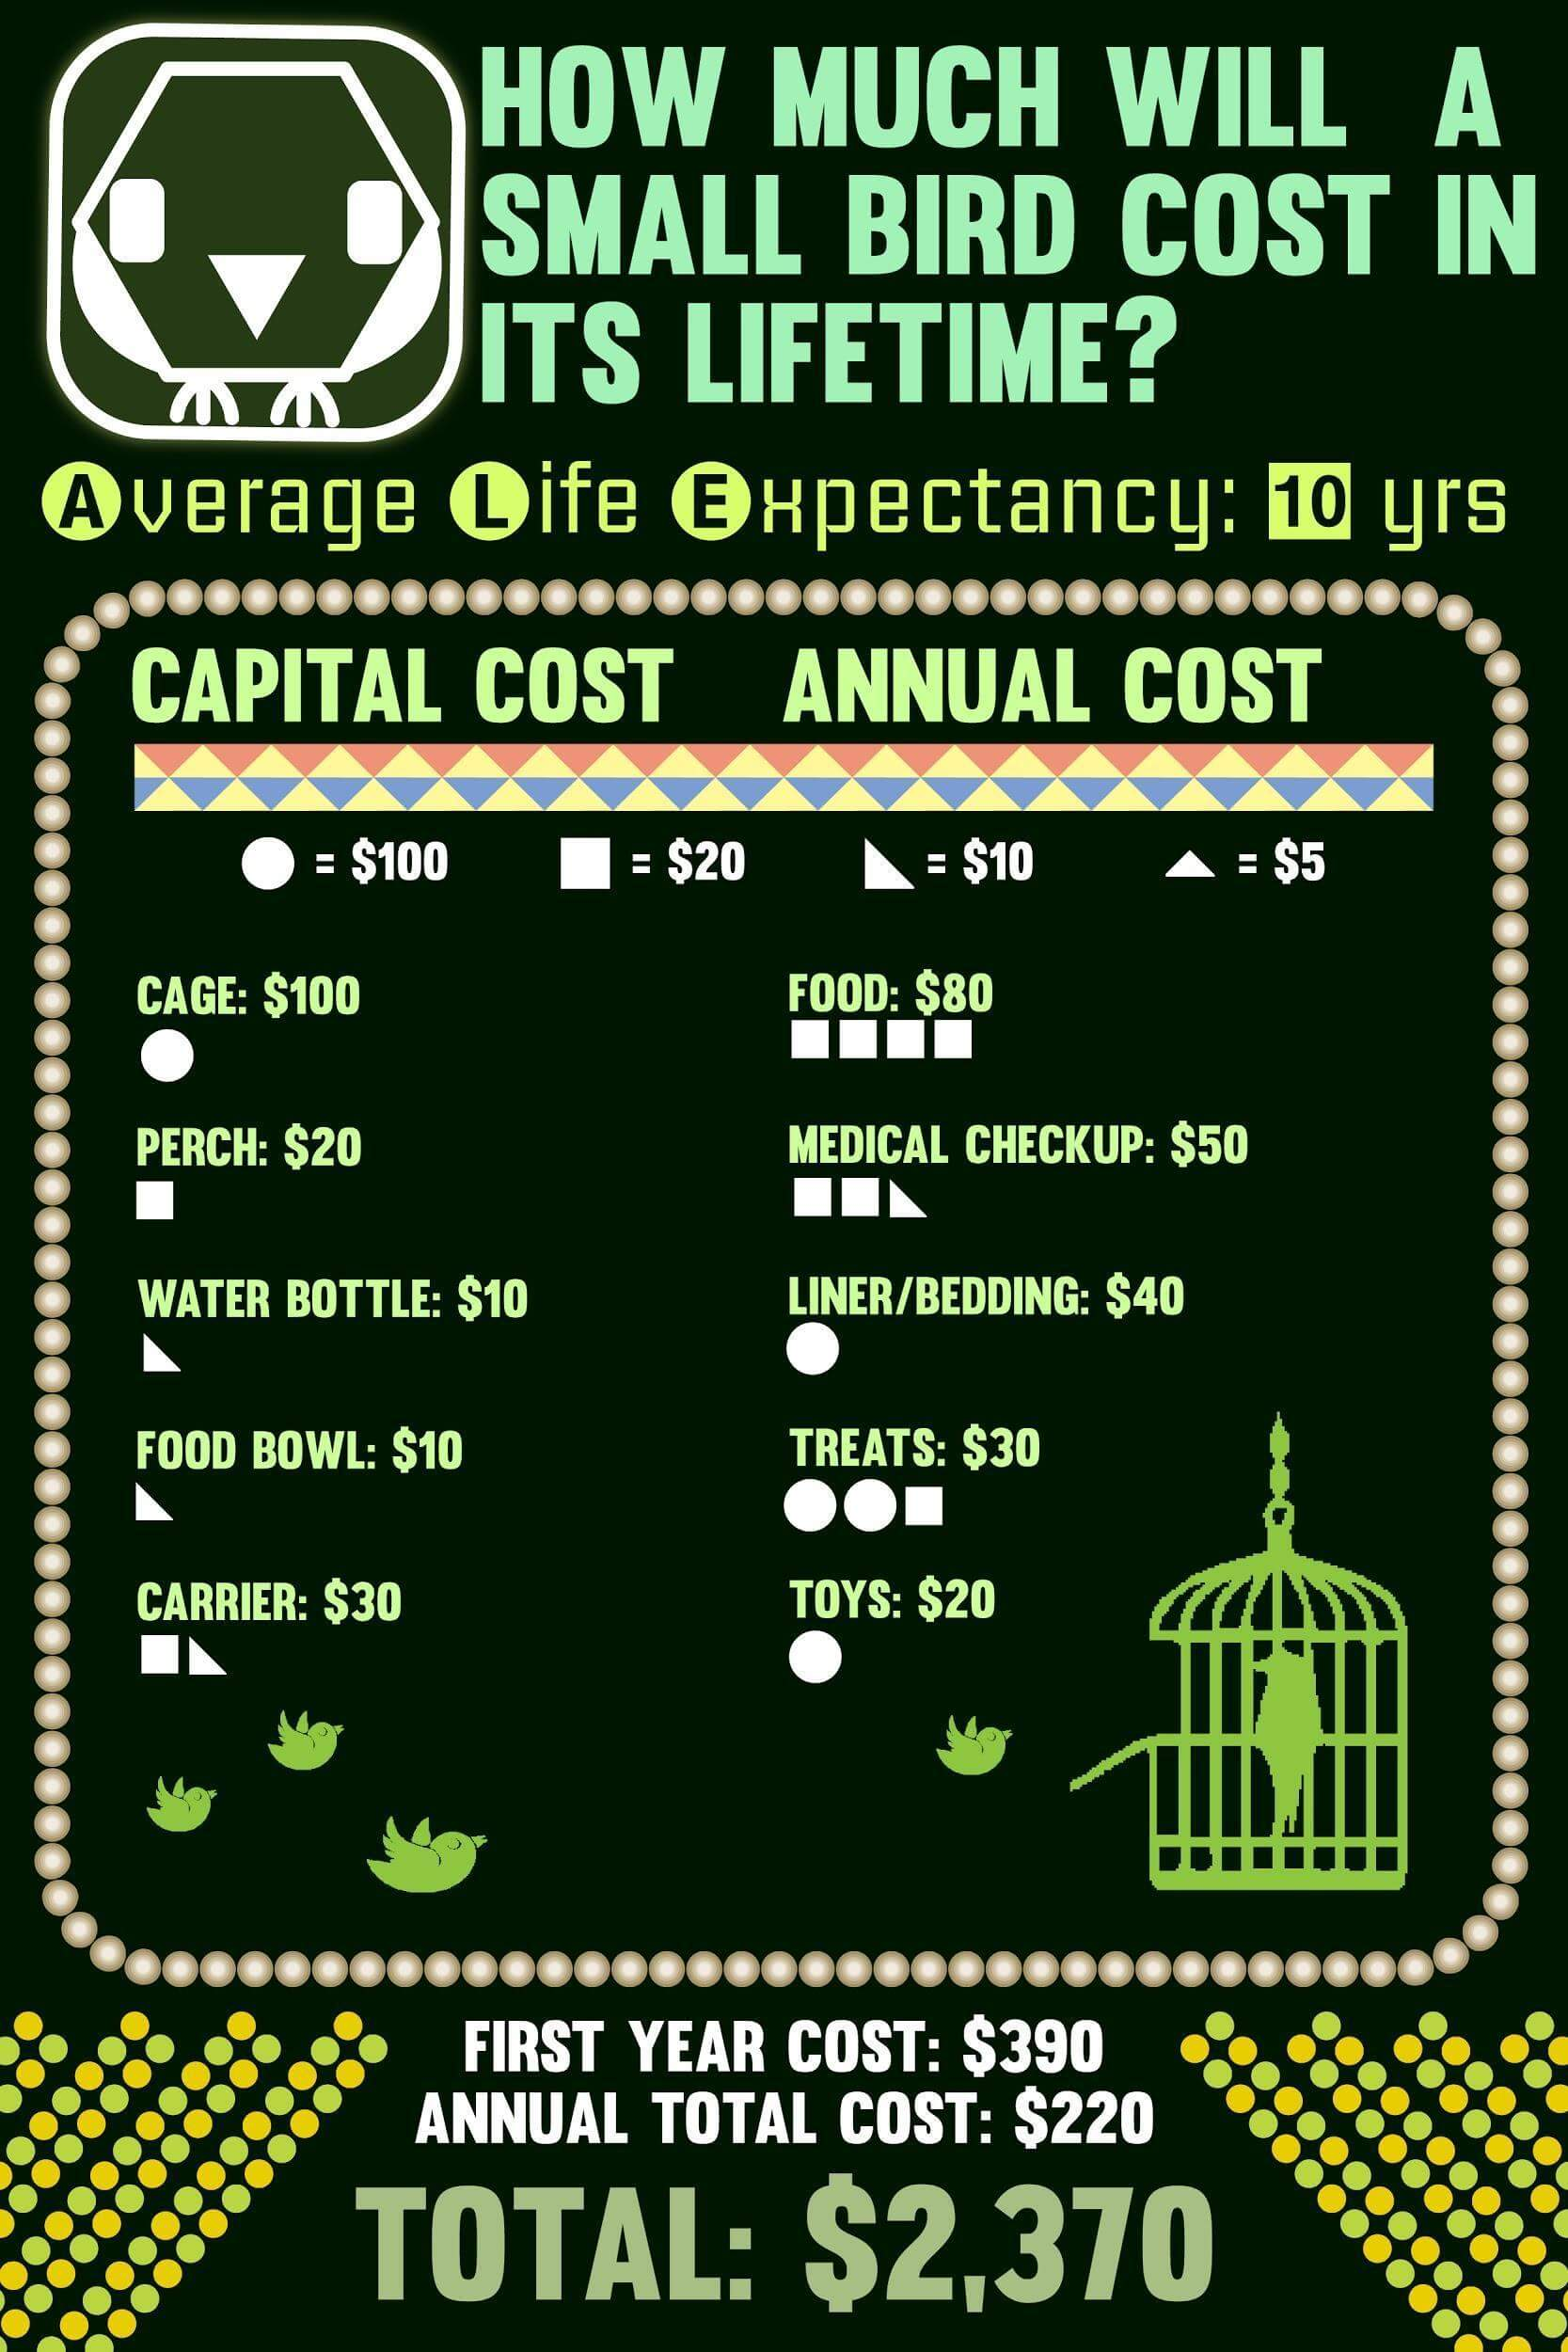 Lifetime costs of small birds